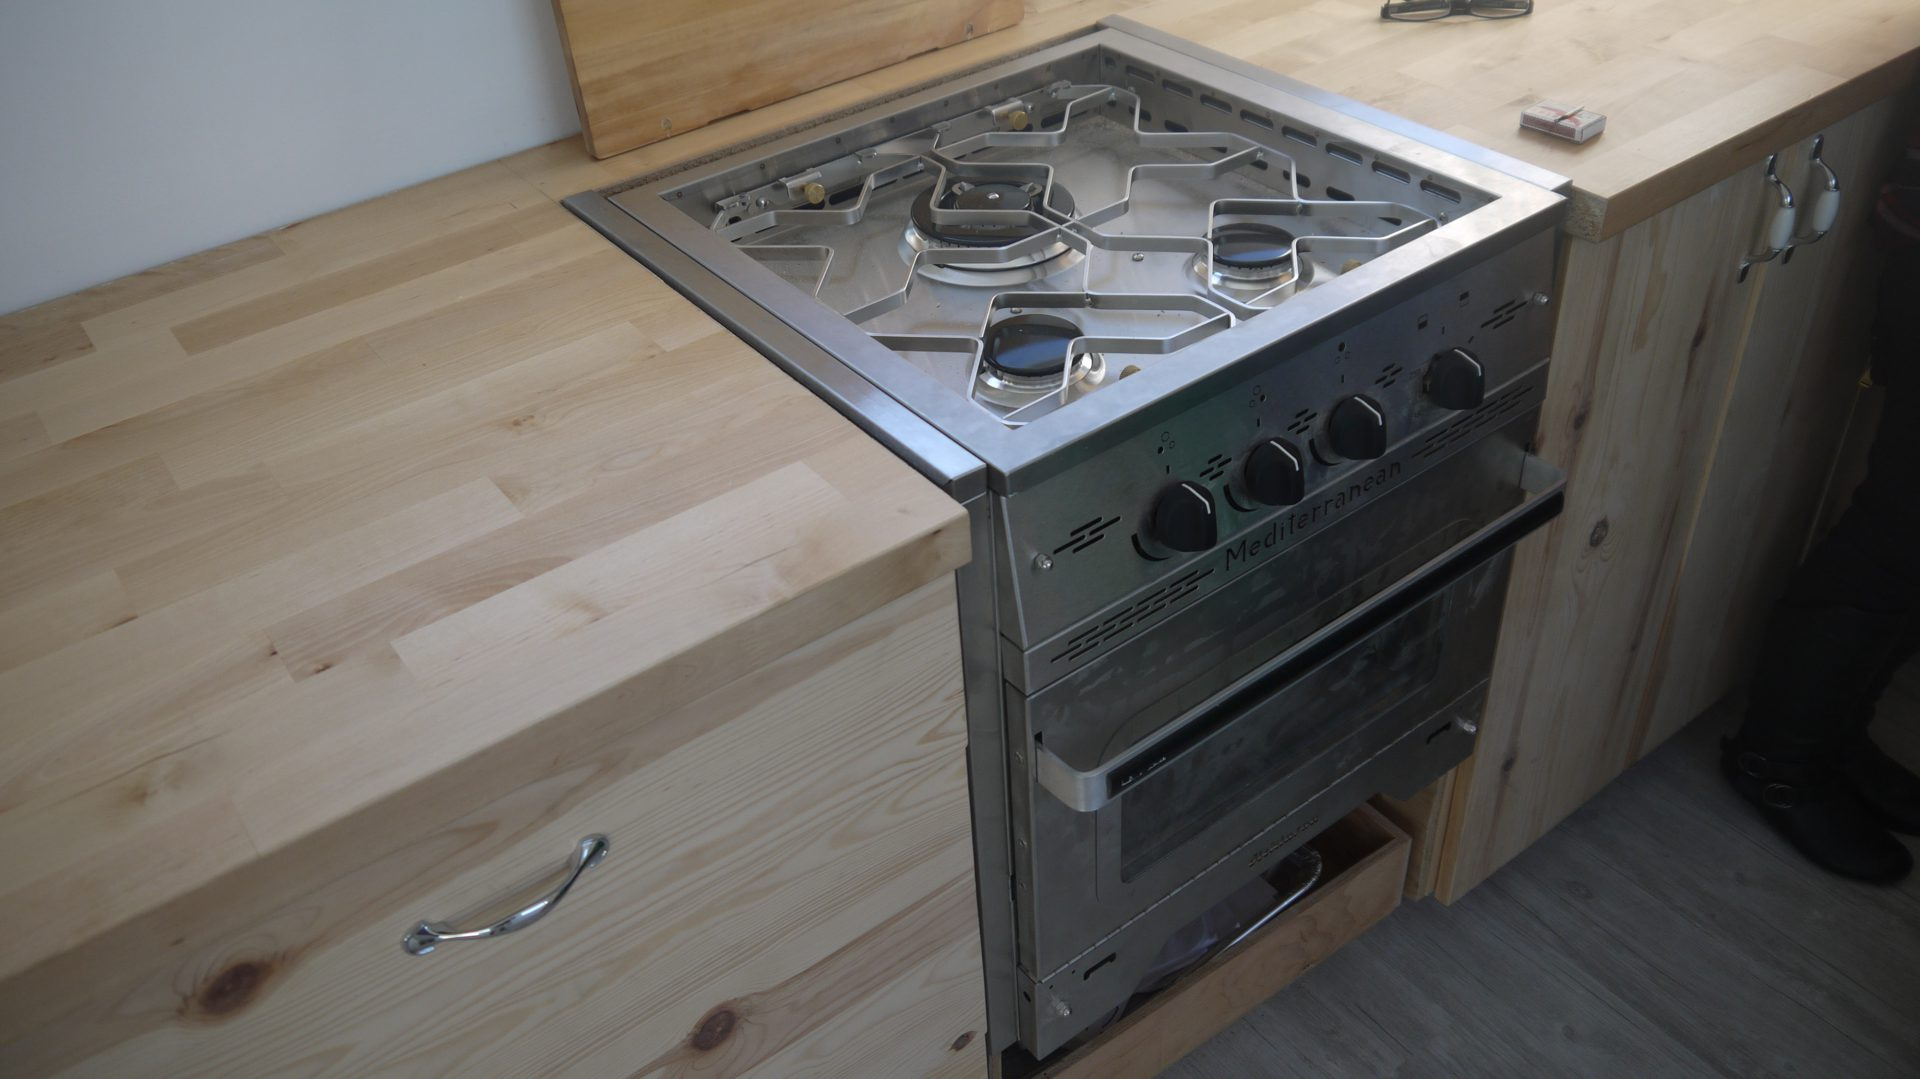 Croteau's propane stove top and oven.